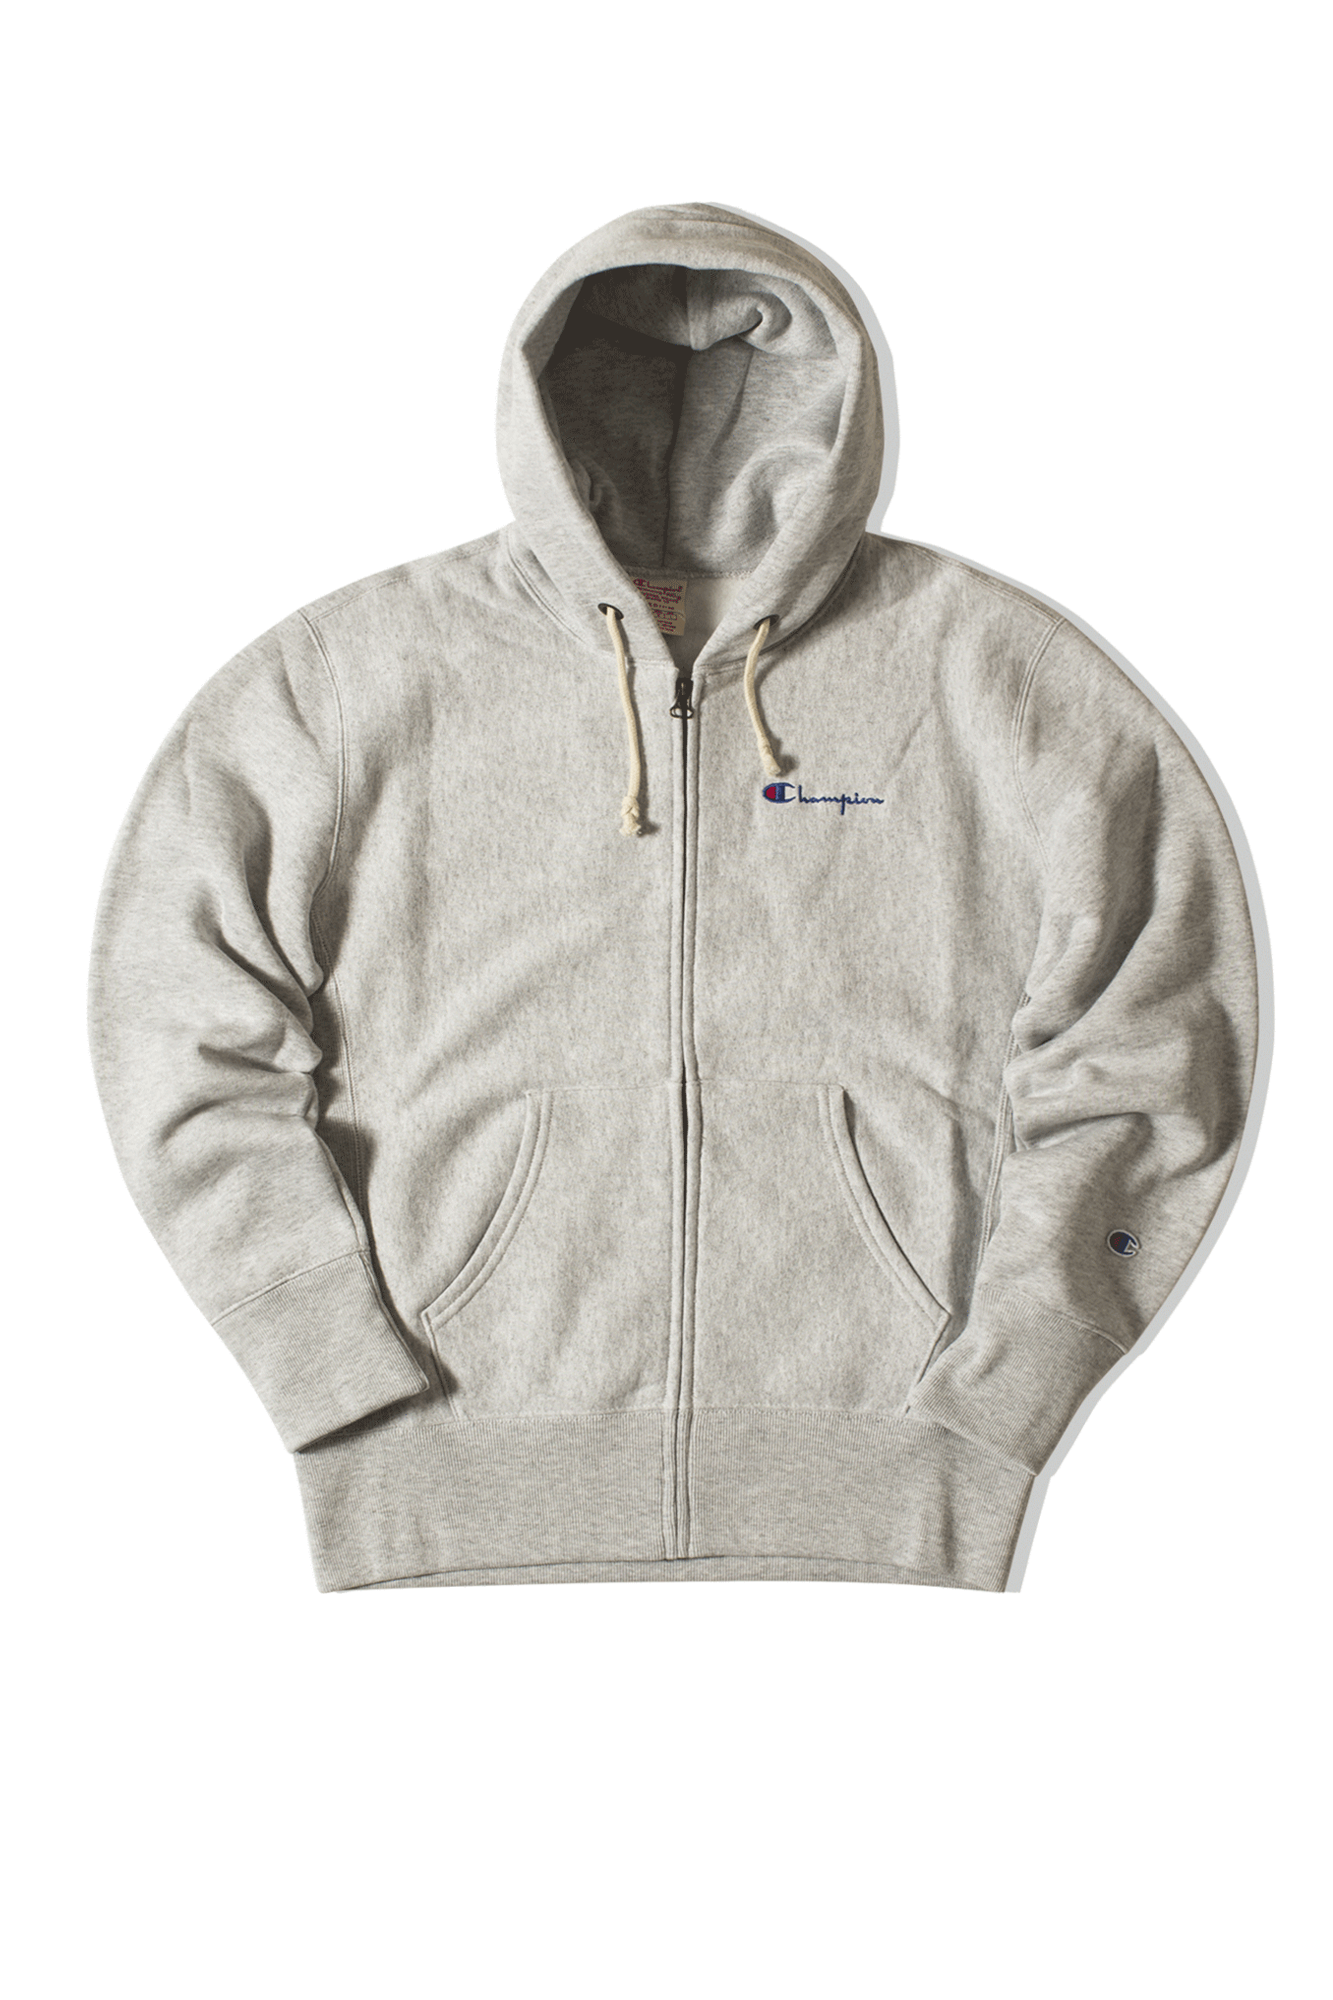 Hooded Zip-up sweatshirt Grigio